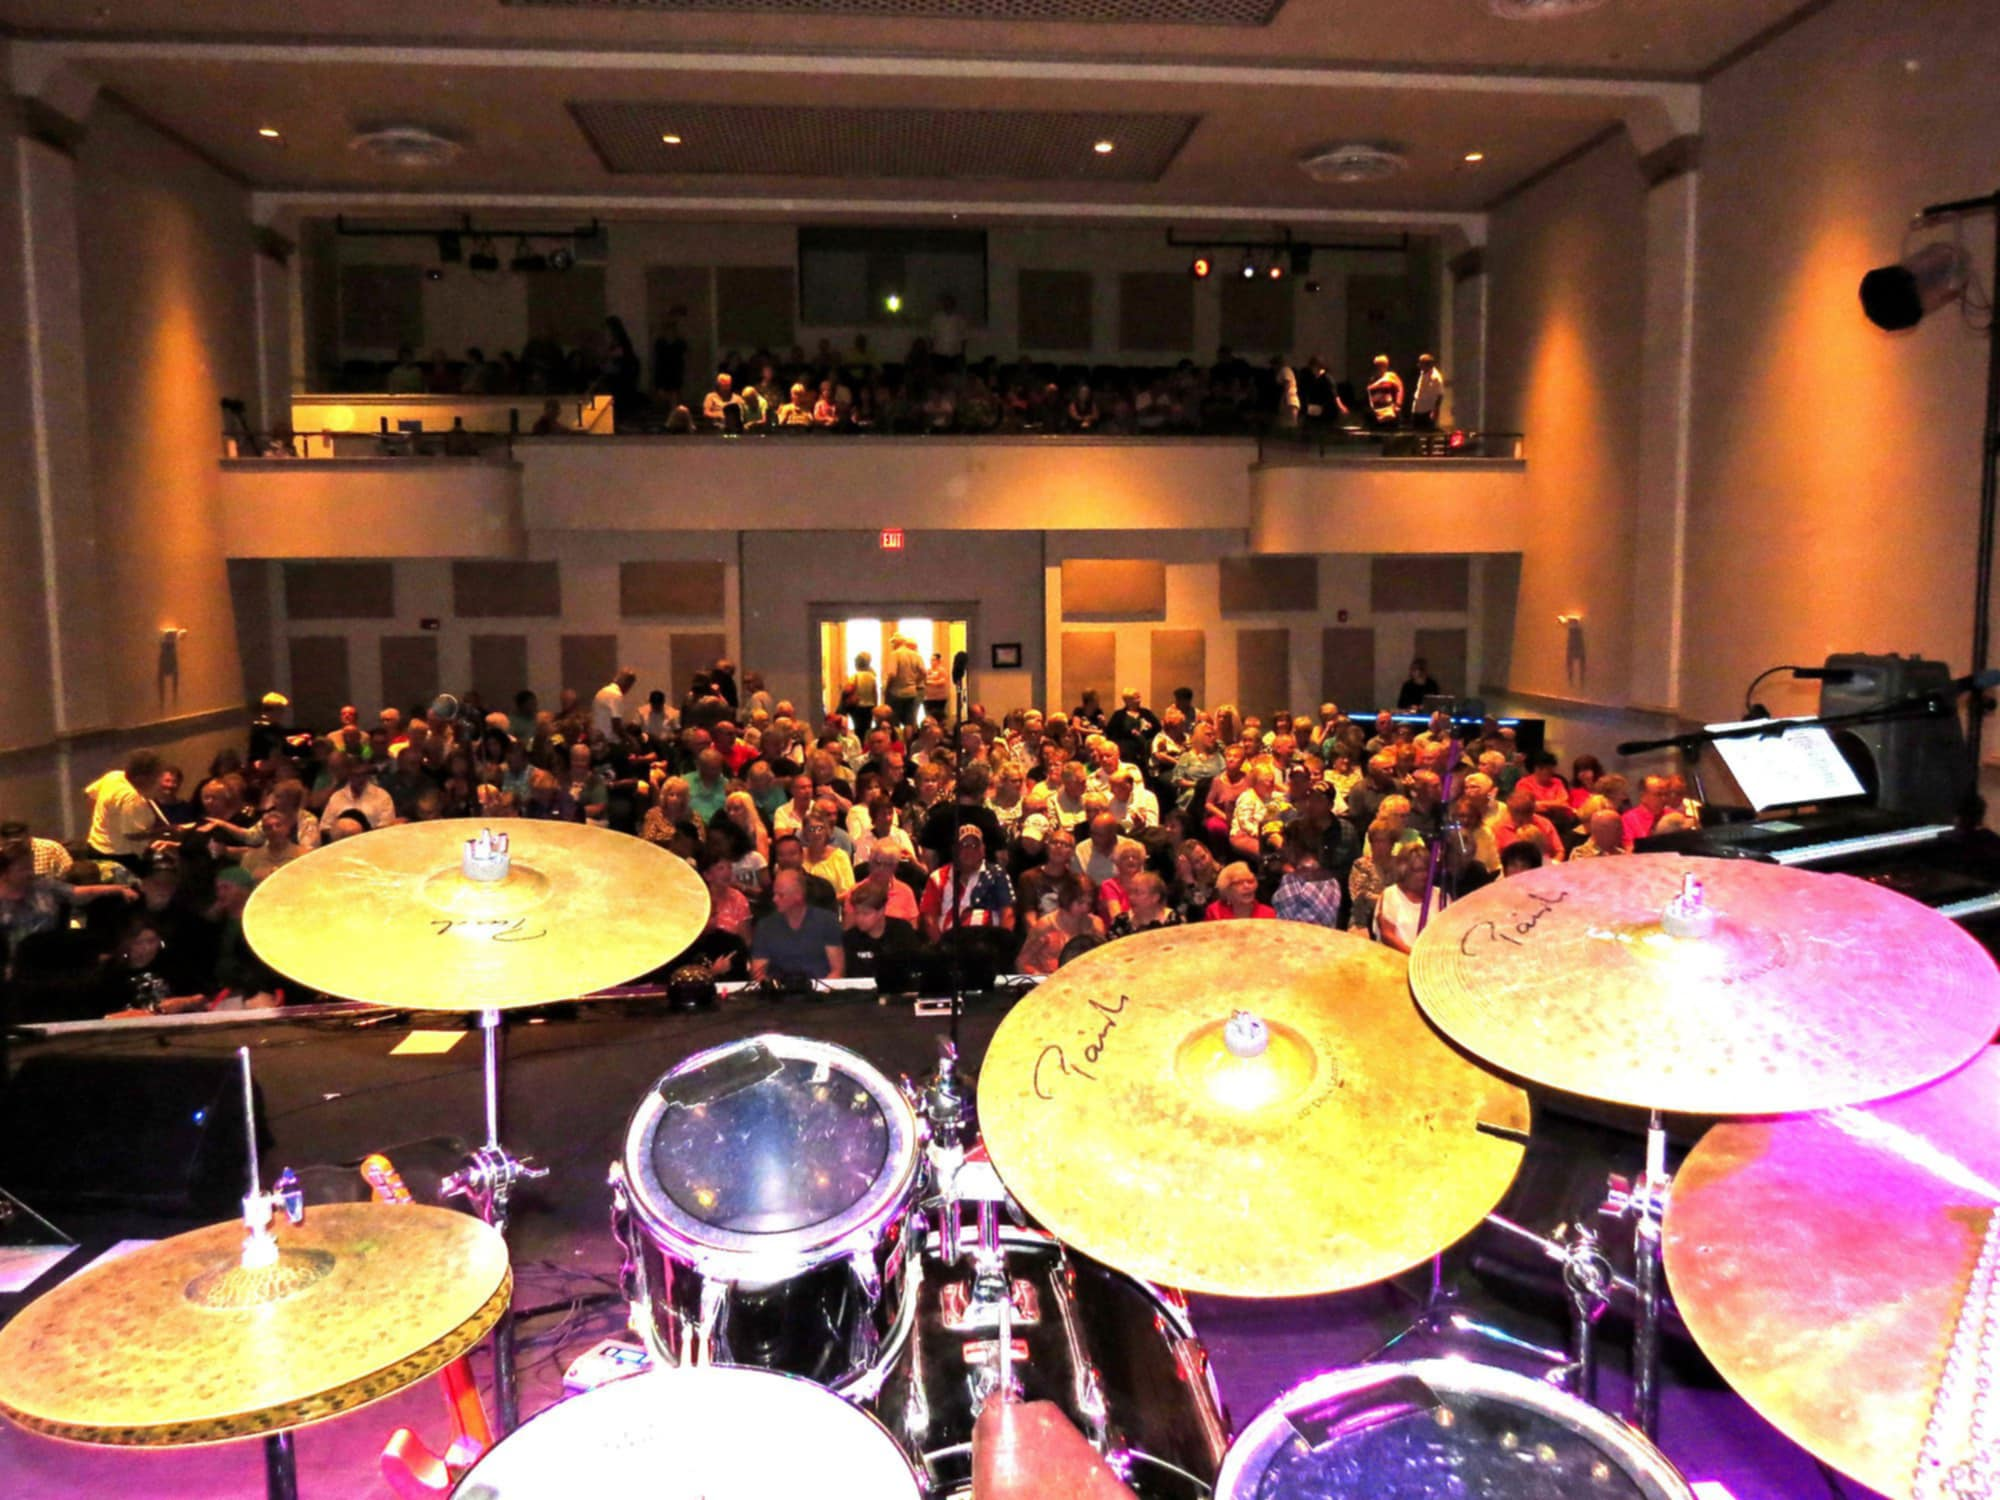 Audience during a concert at Ramon Theater in Frostproof, FL